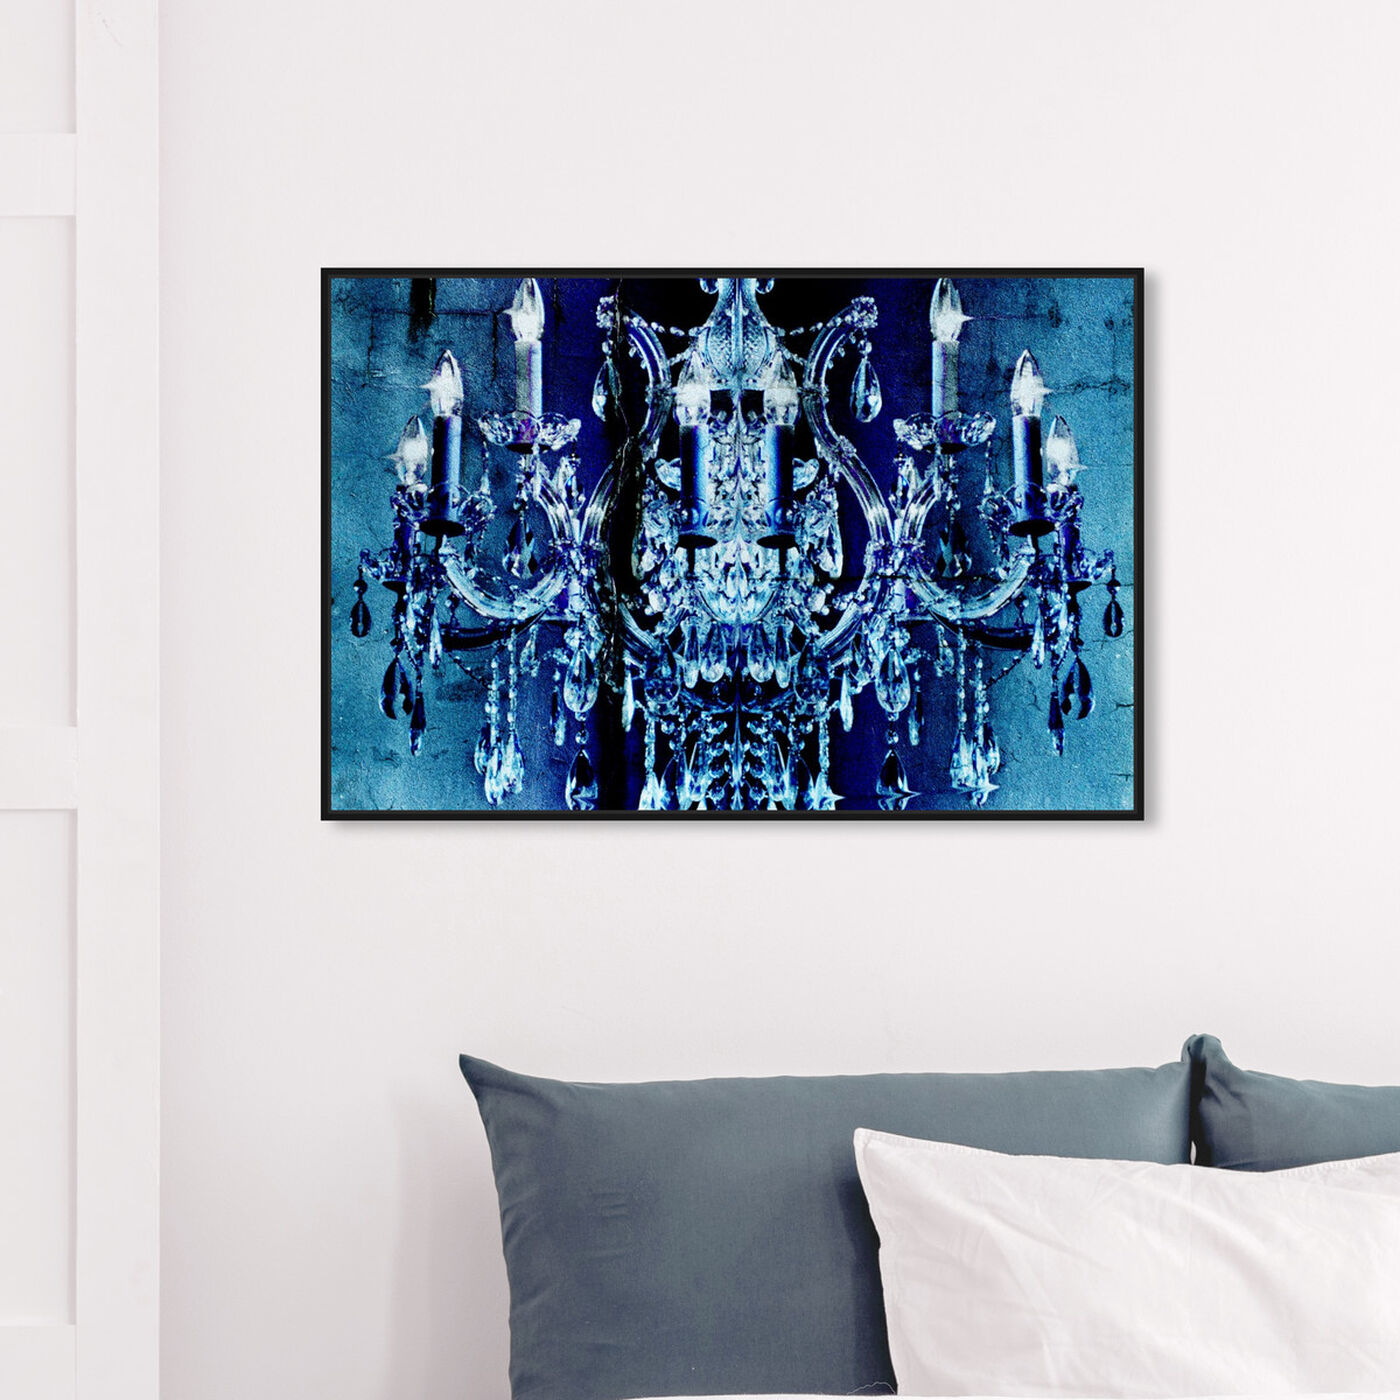 Hanging view of Neptuno featuring fashion and glam and chandeliers art.